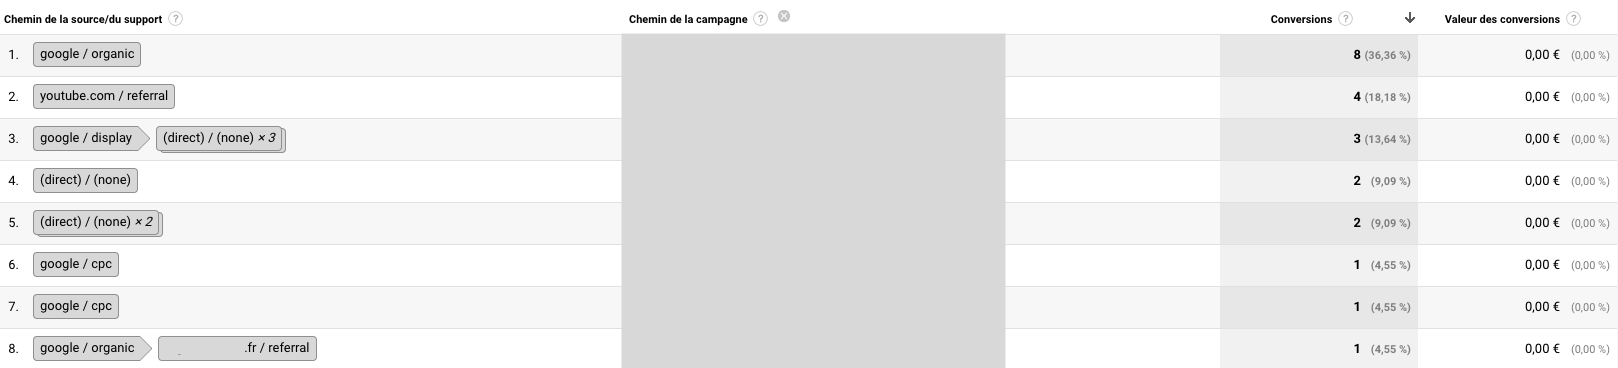 rapport google analytics chemins de conversion